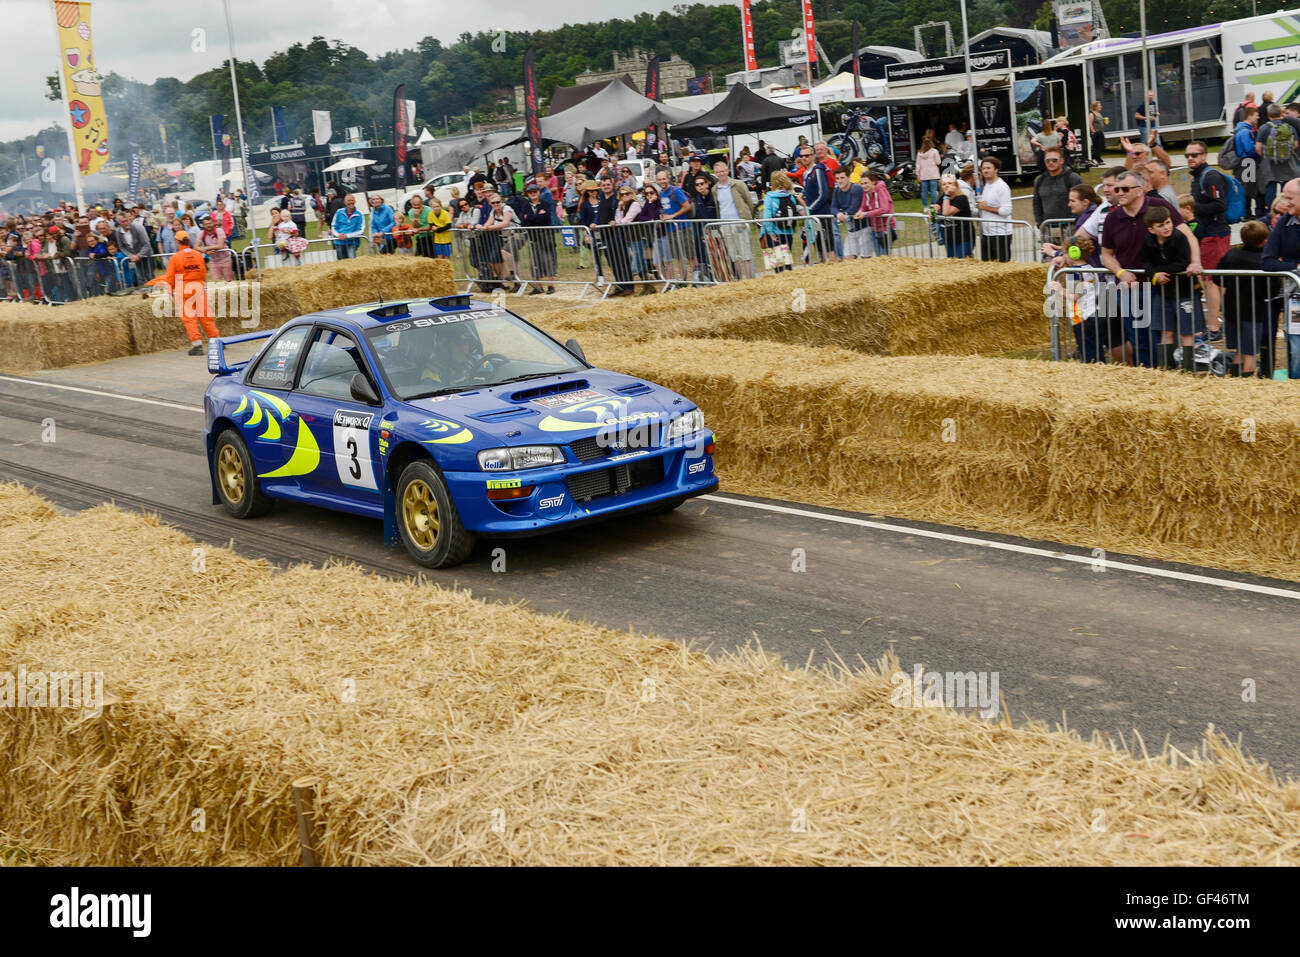 Subaru Rally Car Stock Photos & Subaru Rally Car Stock Images - Alamy